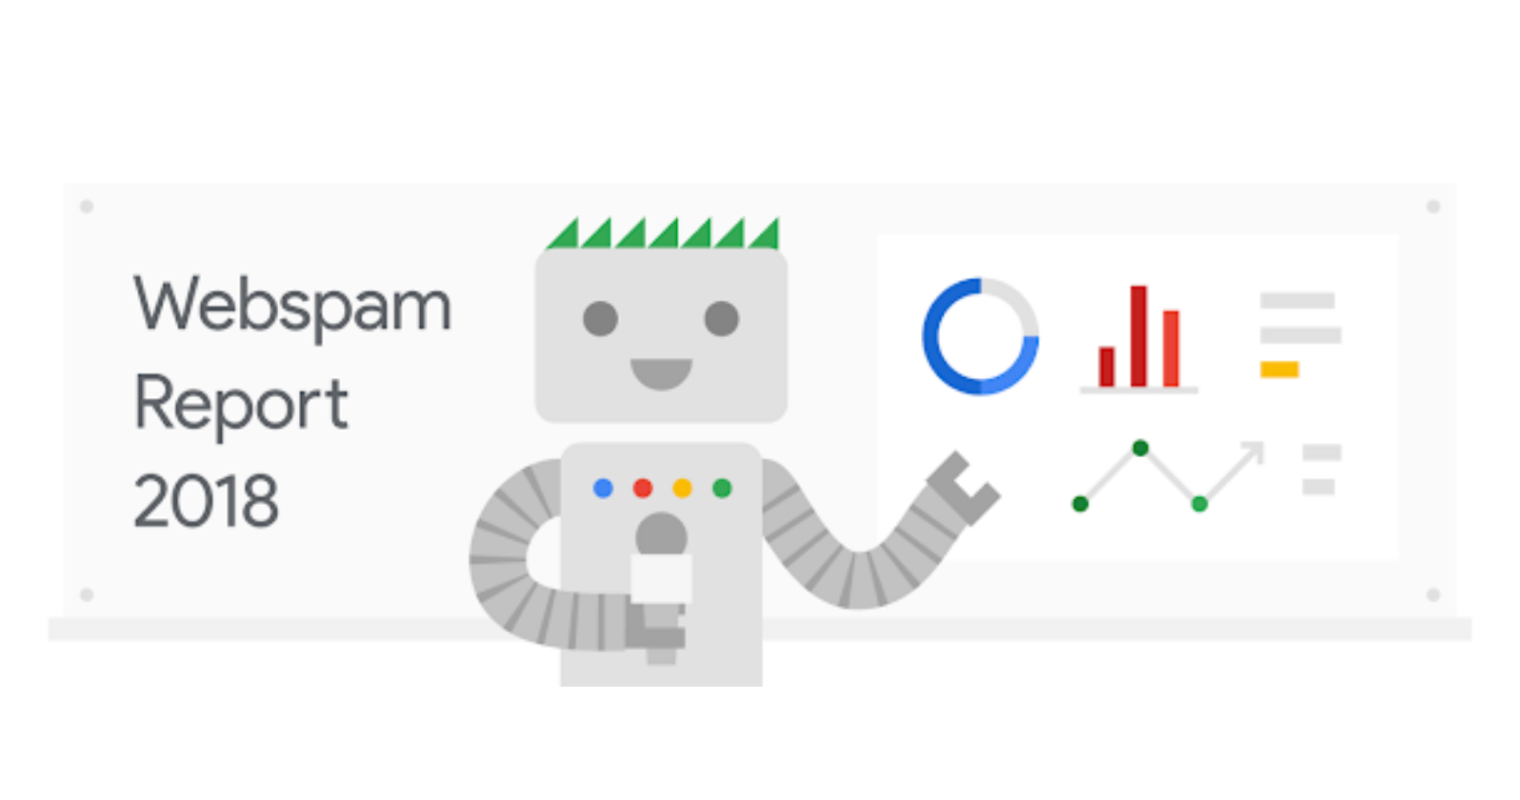 Google Made More Linking Practices Less Effective at Manipulating Rankings